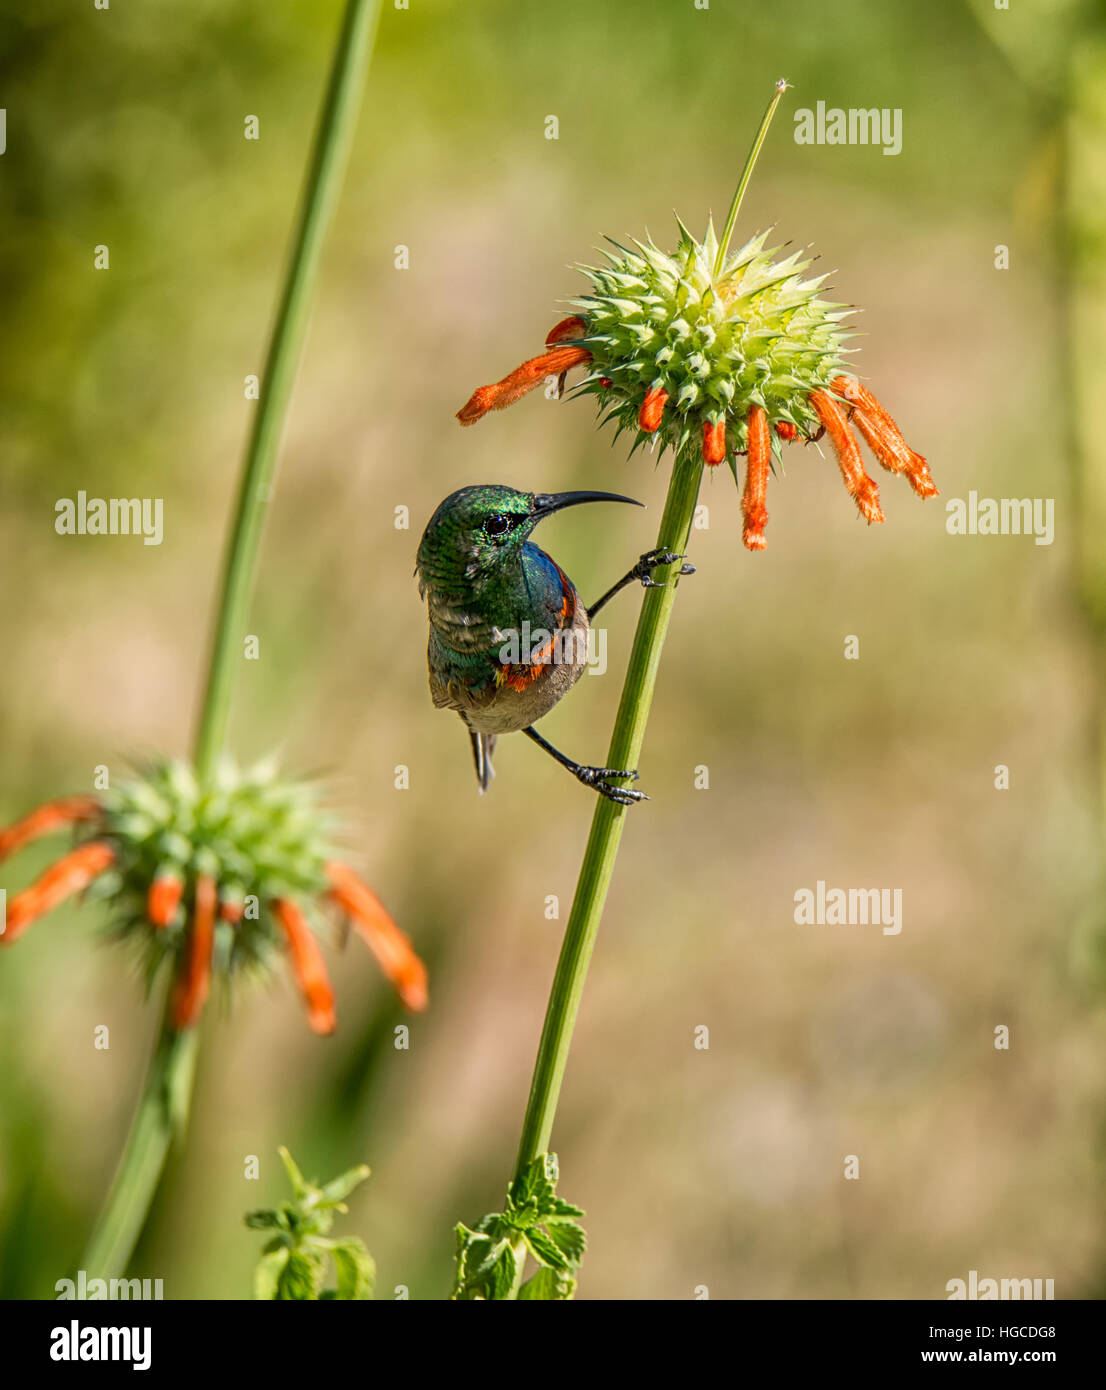 A Southern Double-collared Sunbird perched on a Wild dagga plant in Southern Africa - Stock Image